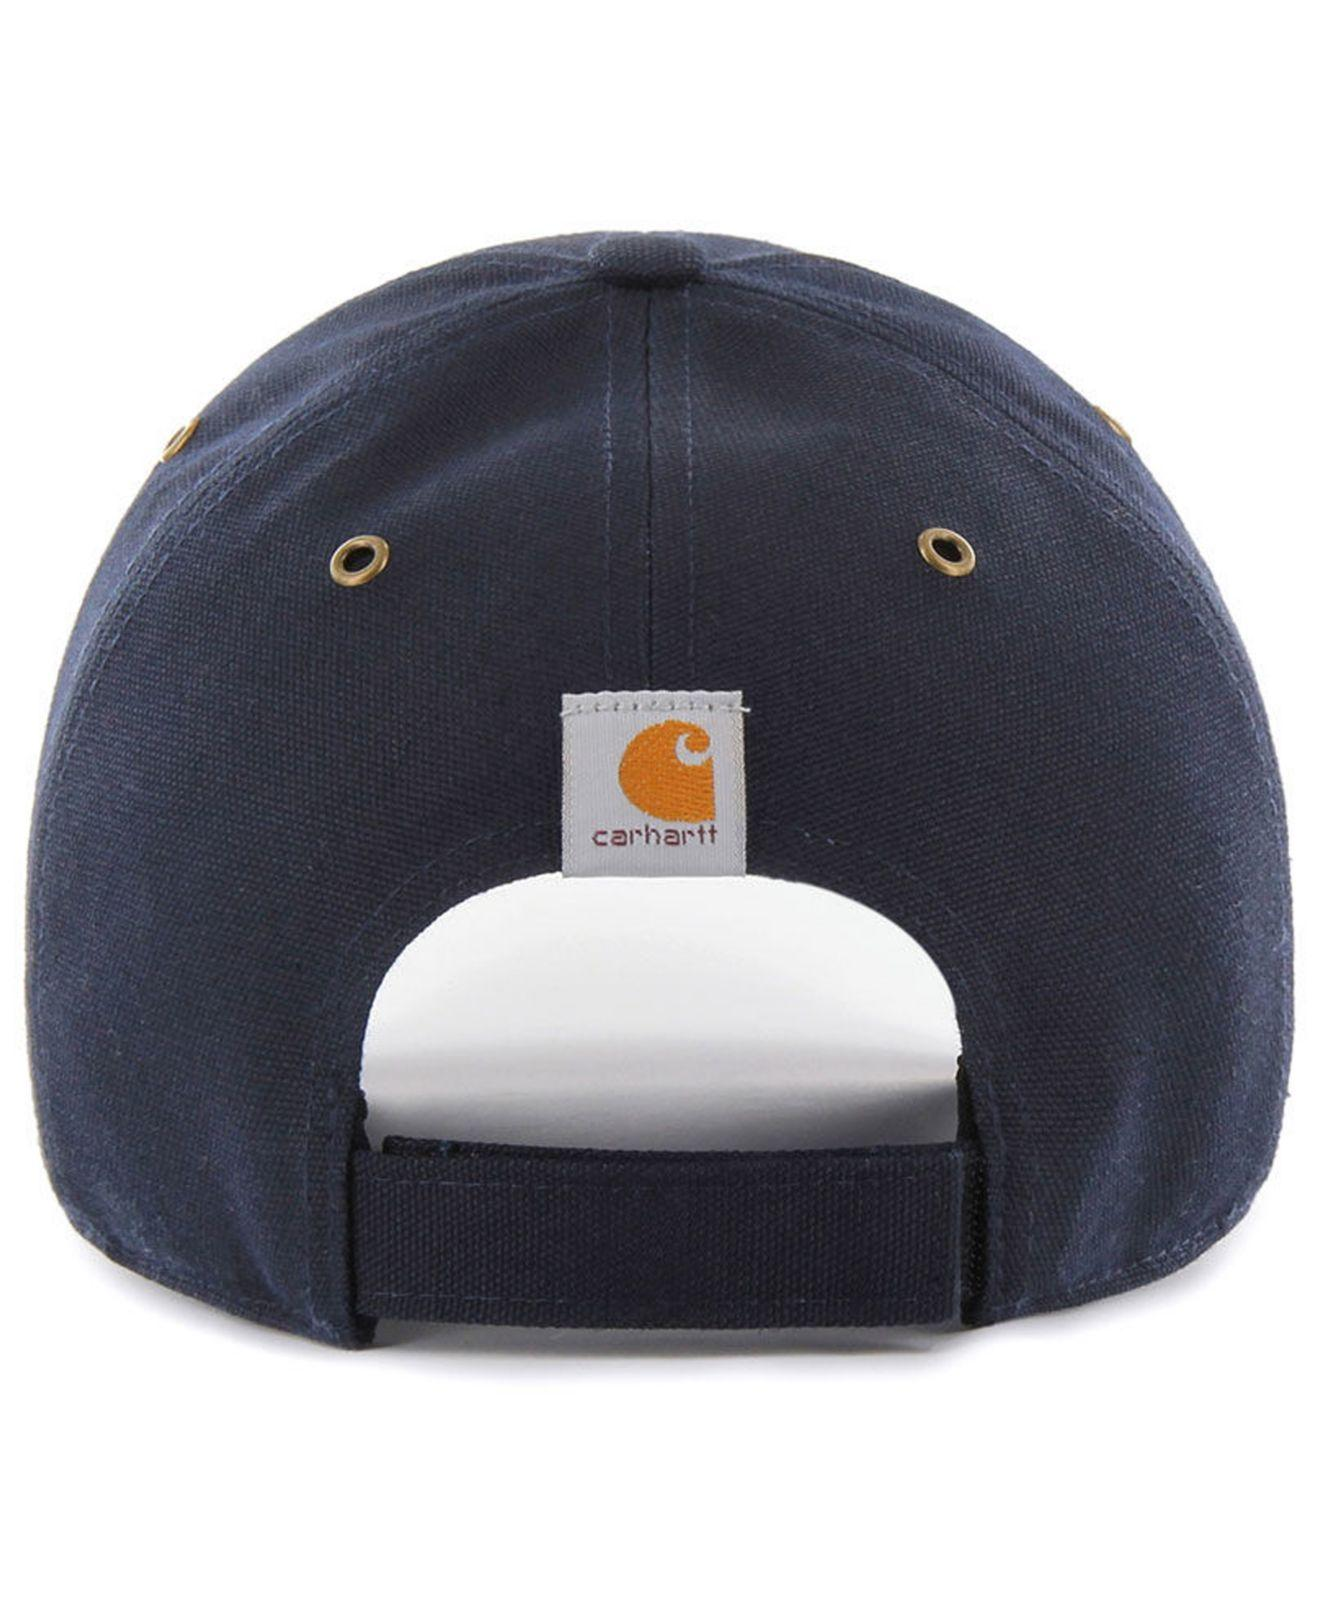 new product e8c7c 01d72 47 Brand Seattle Mariners Carhartt Mvp Cap in Blue for Men - Lyst